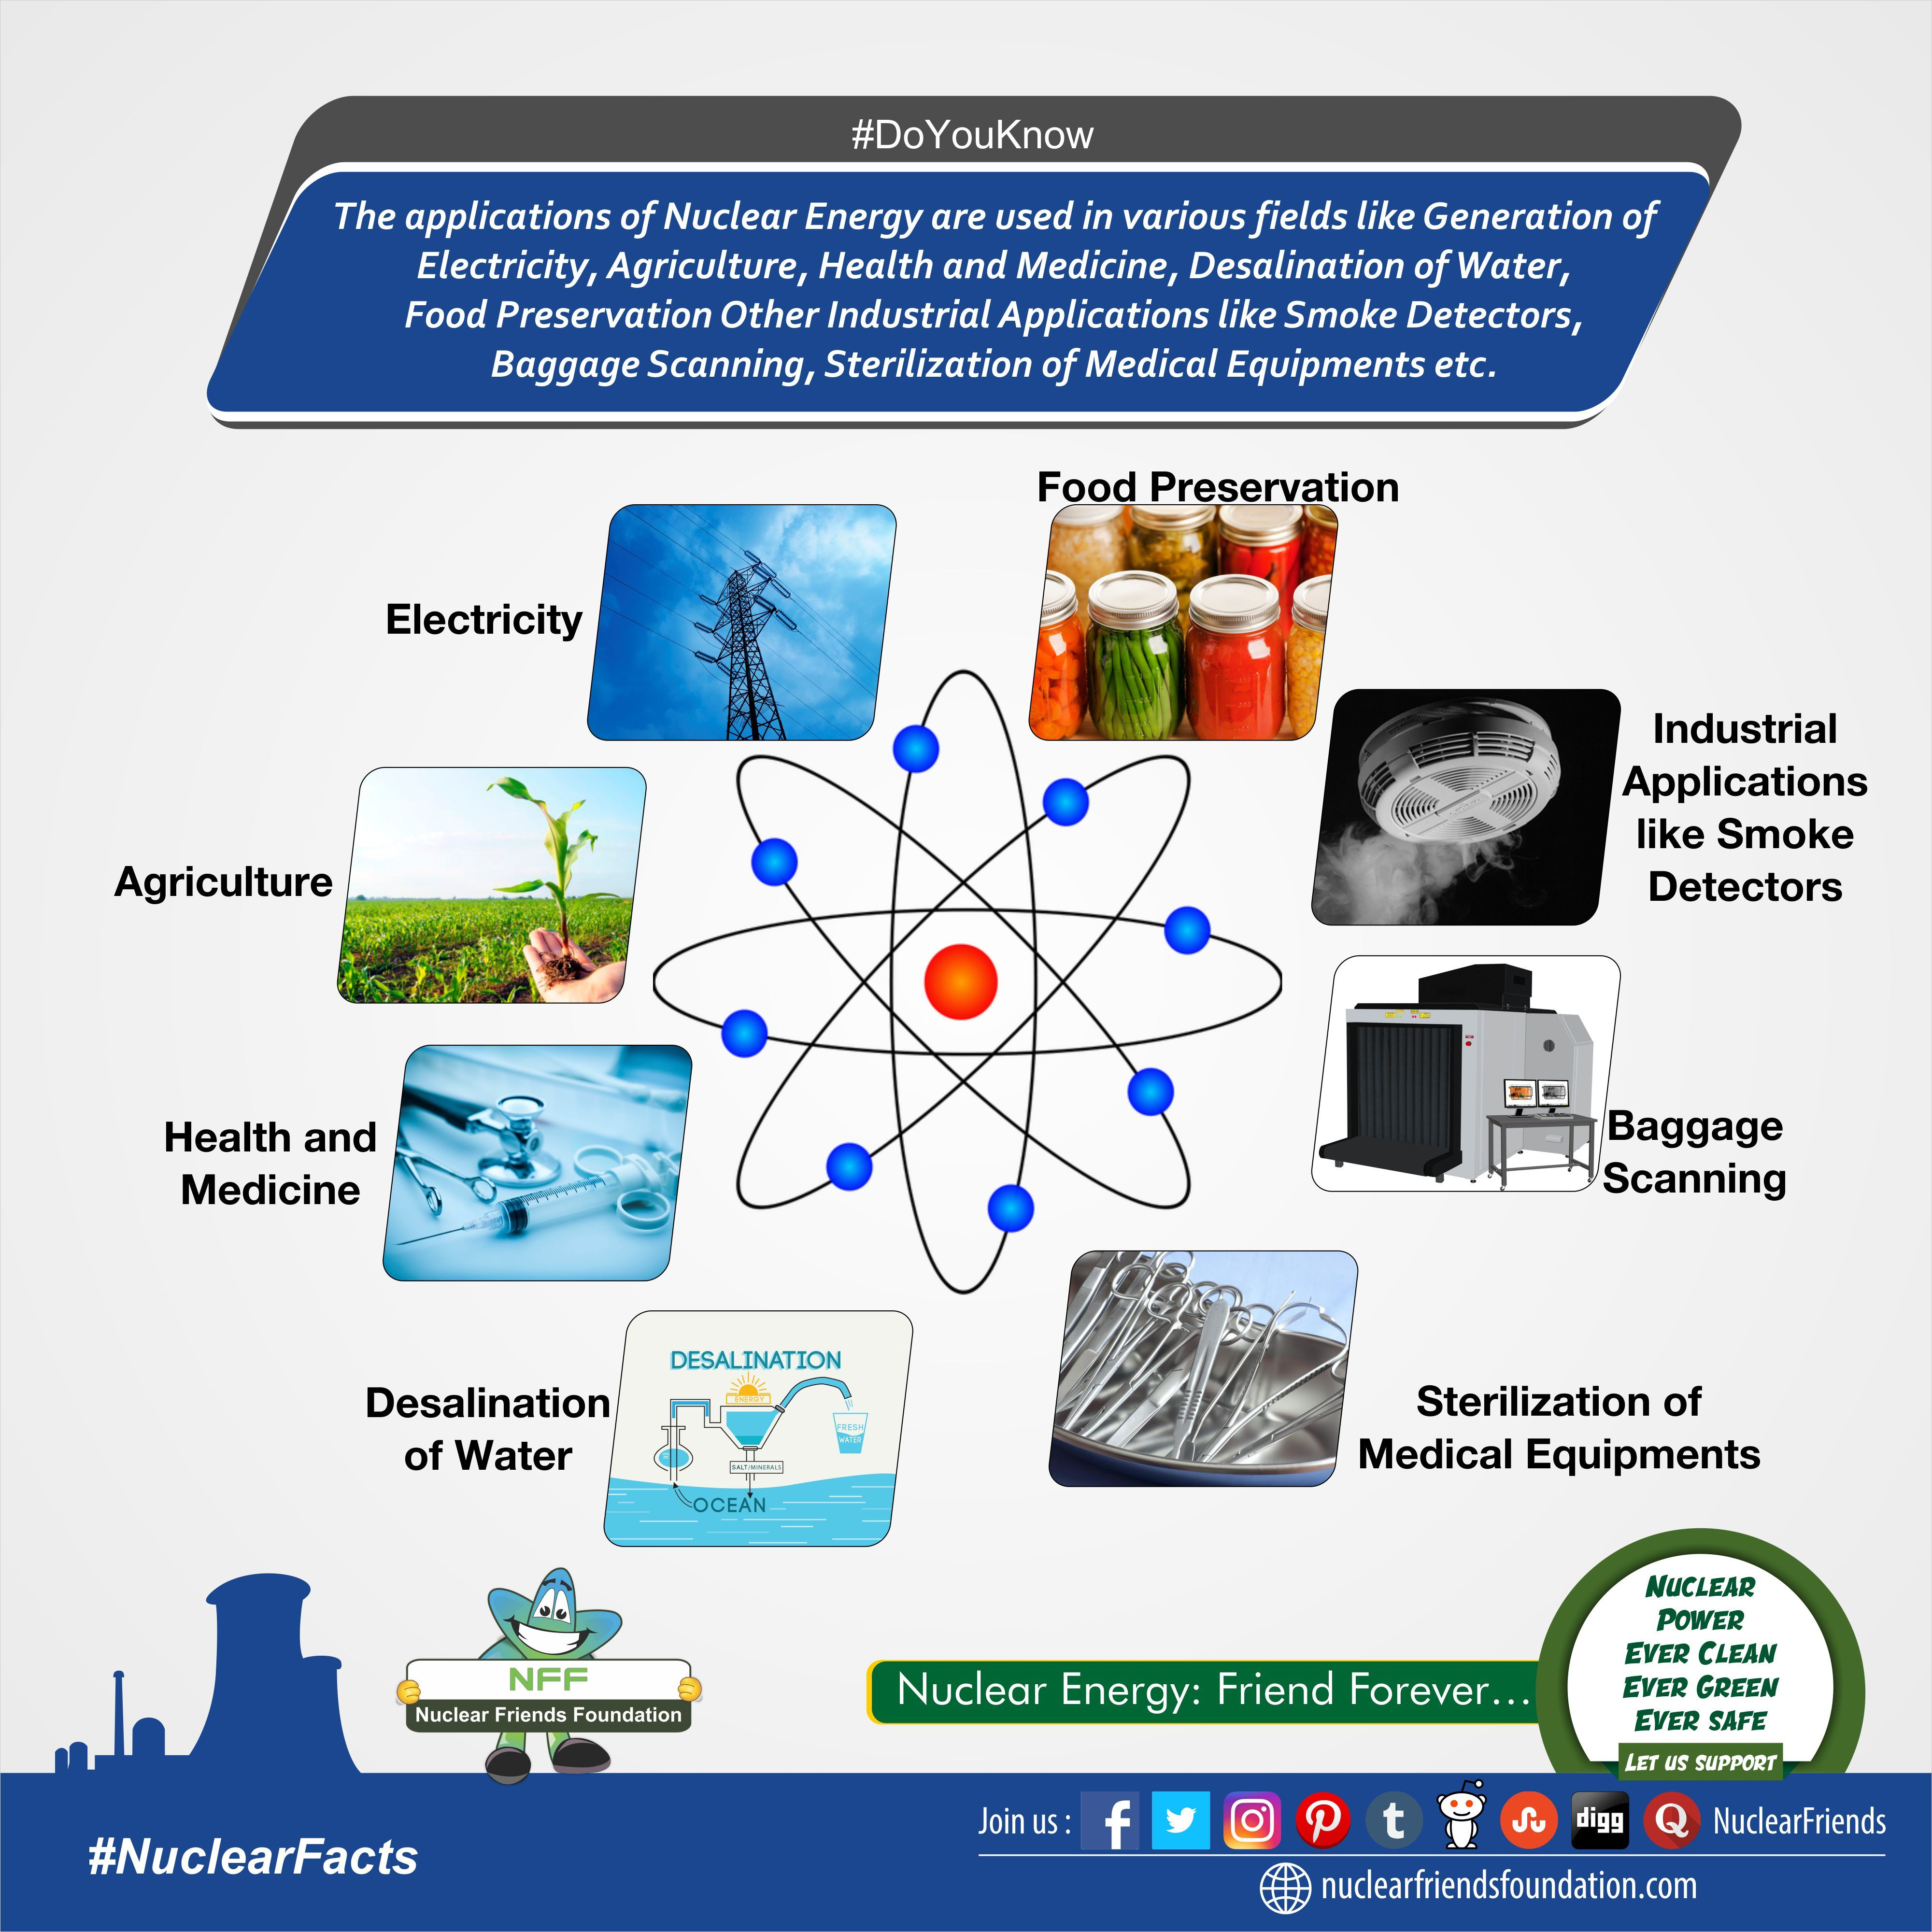 Doyouknow the applications of nuclear energy are used in